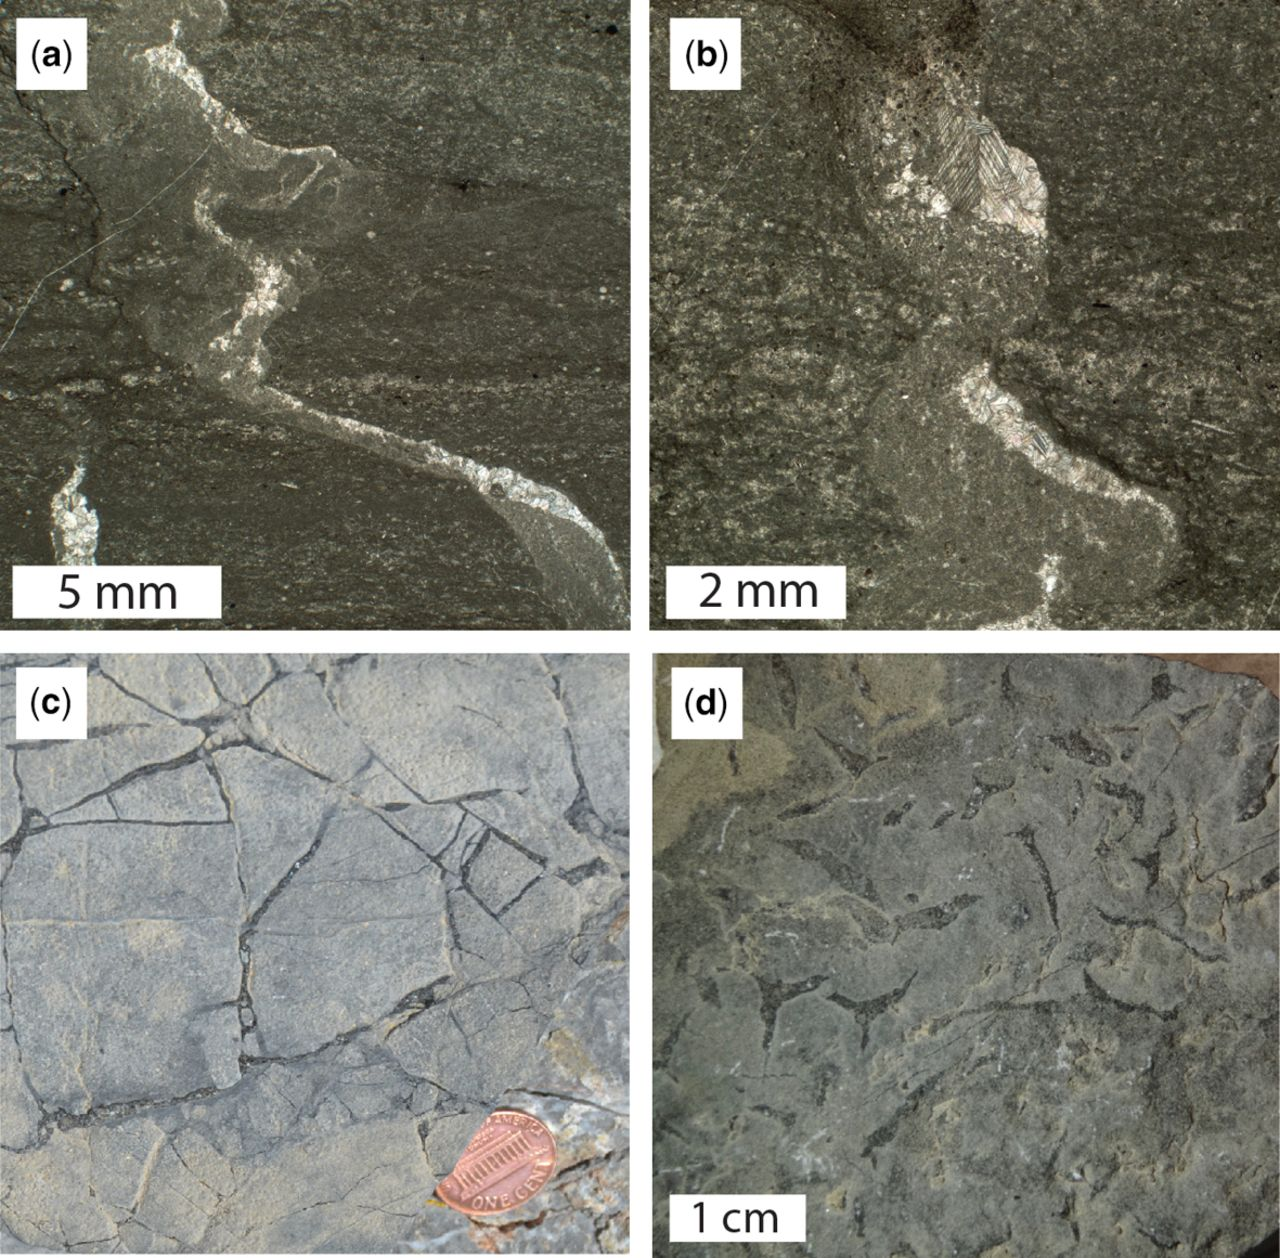 The origin and occurrence of subaqueous sedimentary cracks